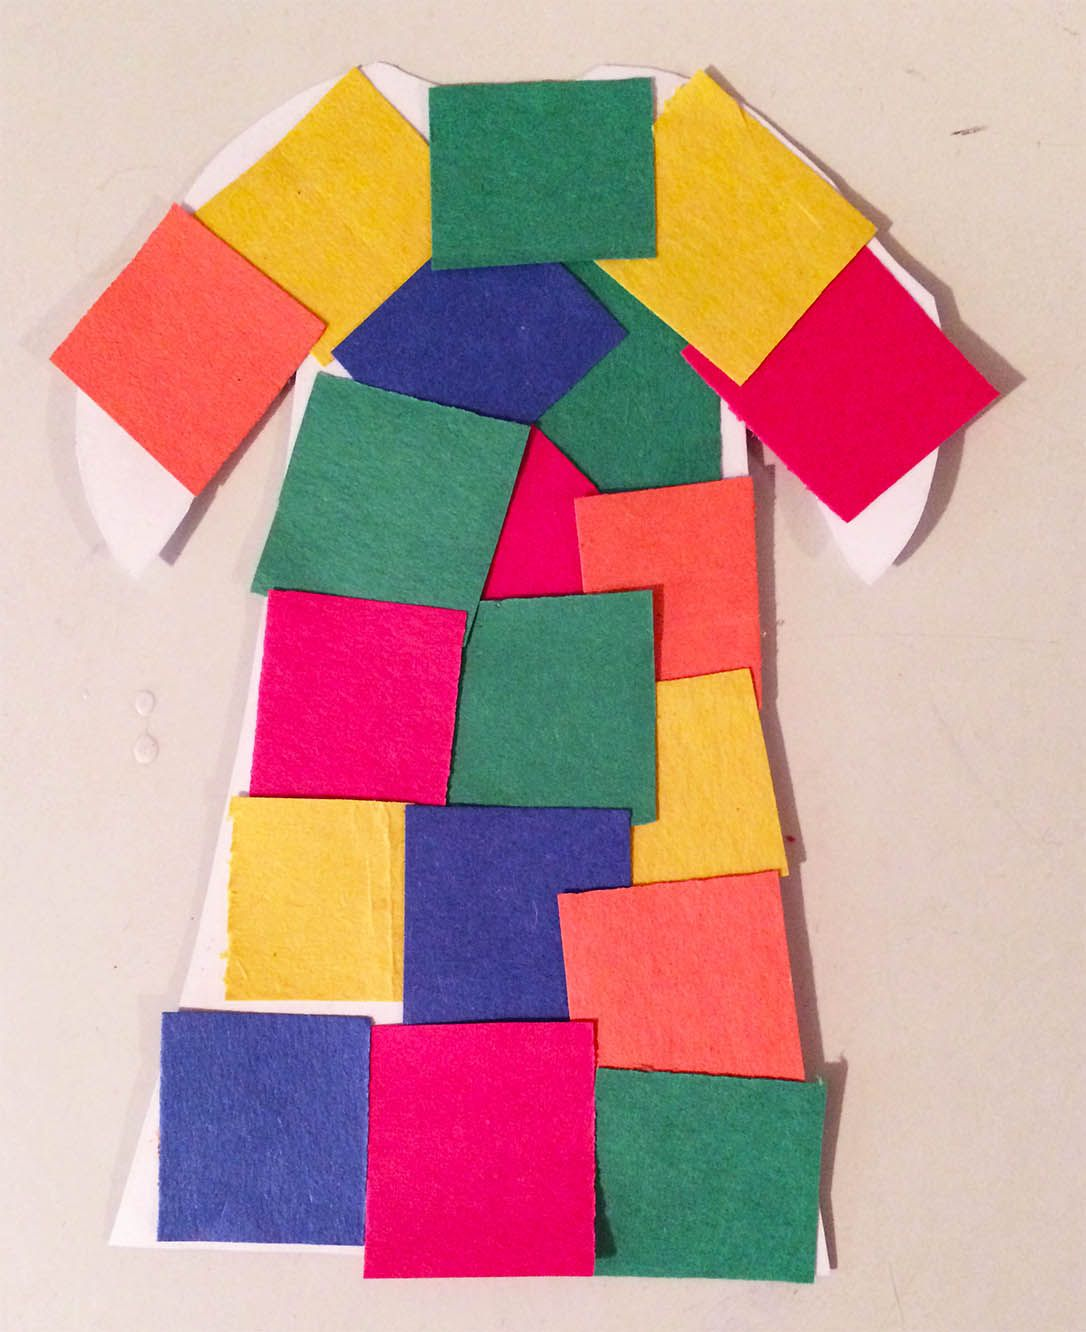 Joseph S Colorful Coat Bible Craft Activity This Fun And Easy Joseph Coat Craft Is An Easy